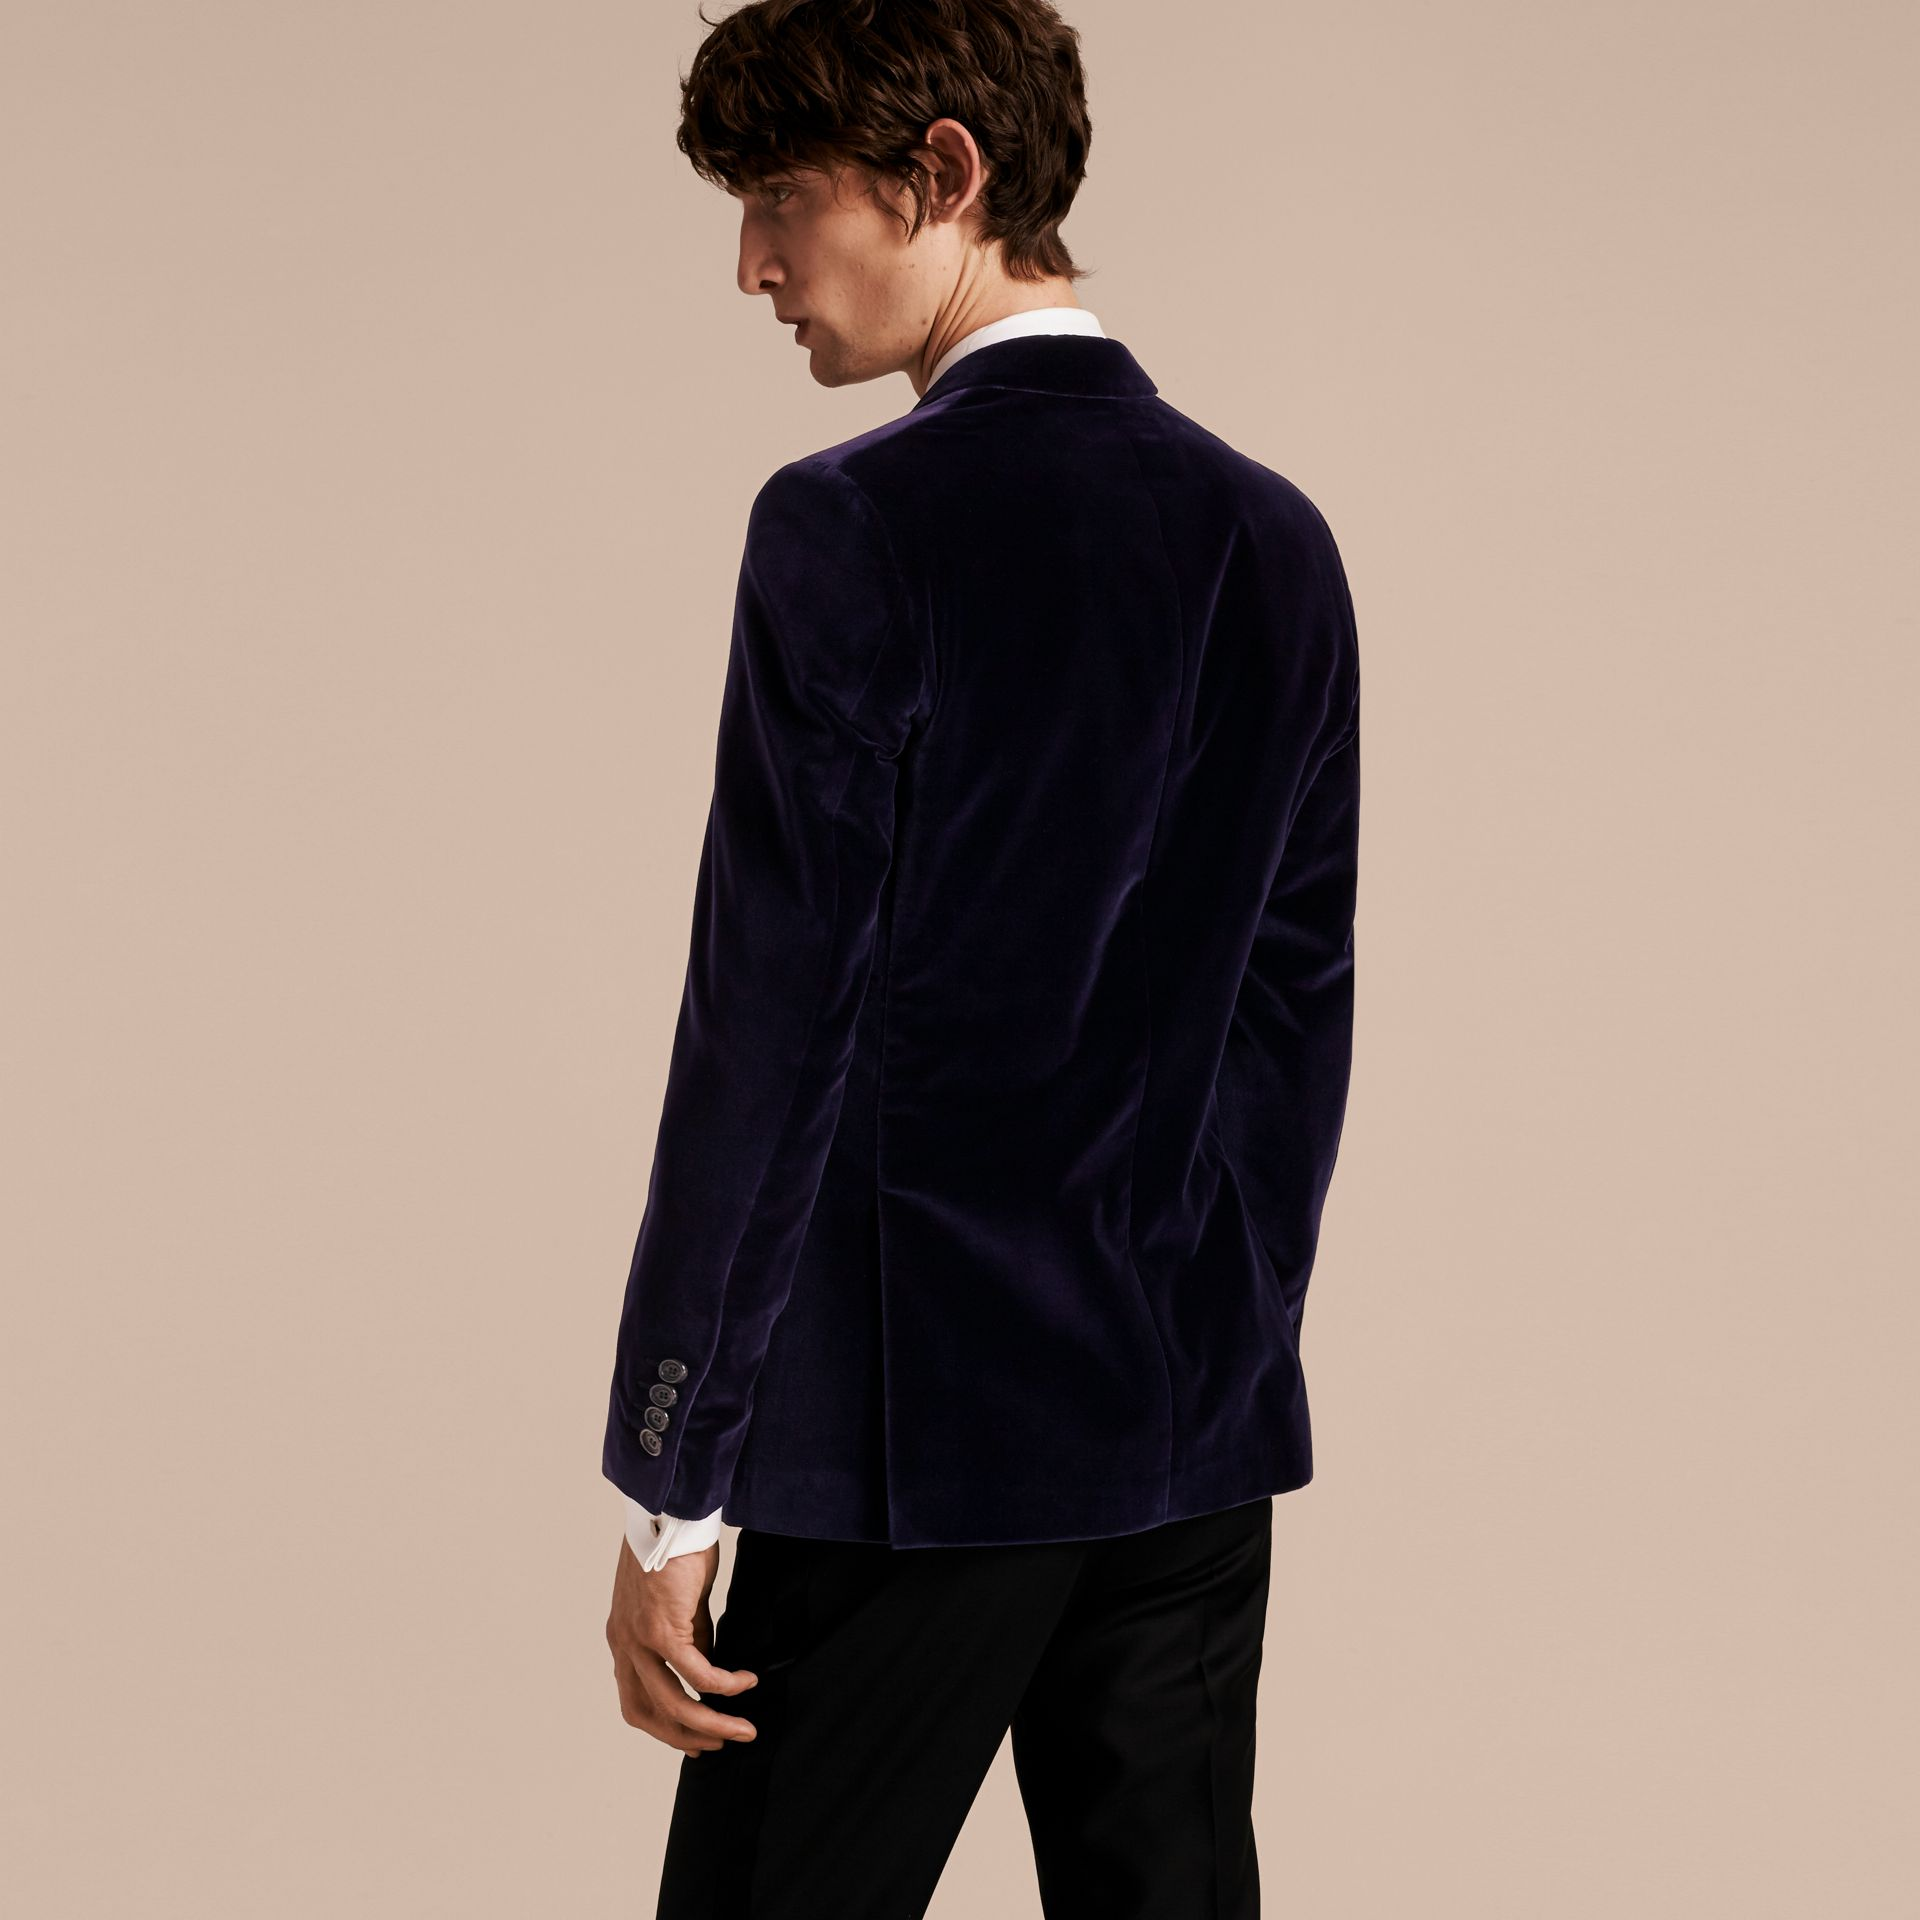 Indigo purple Slim Fit Tailored Velvet Jacket Indigo Purple - gallery image 3